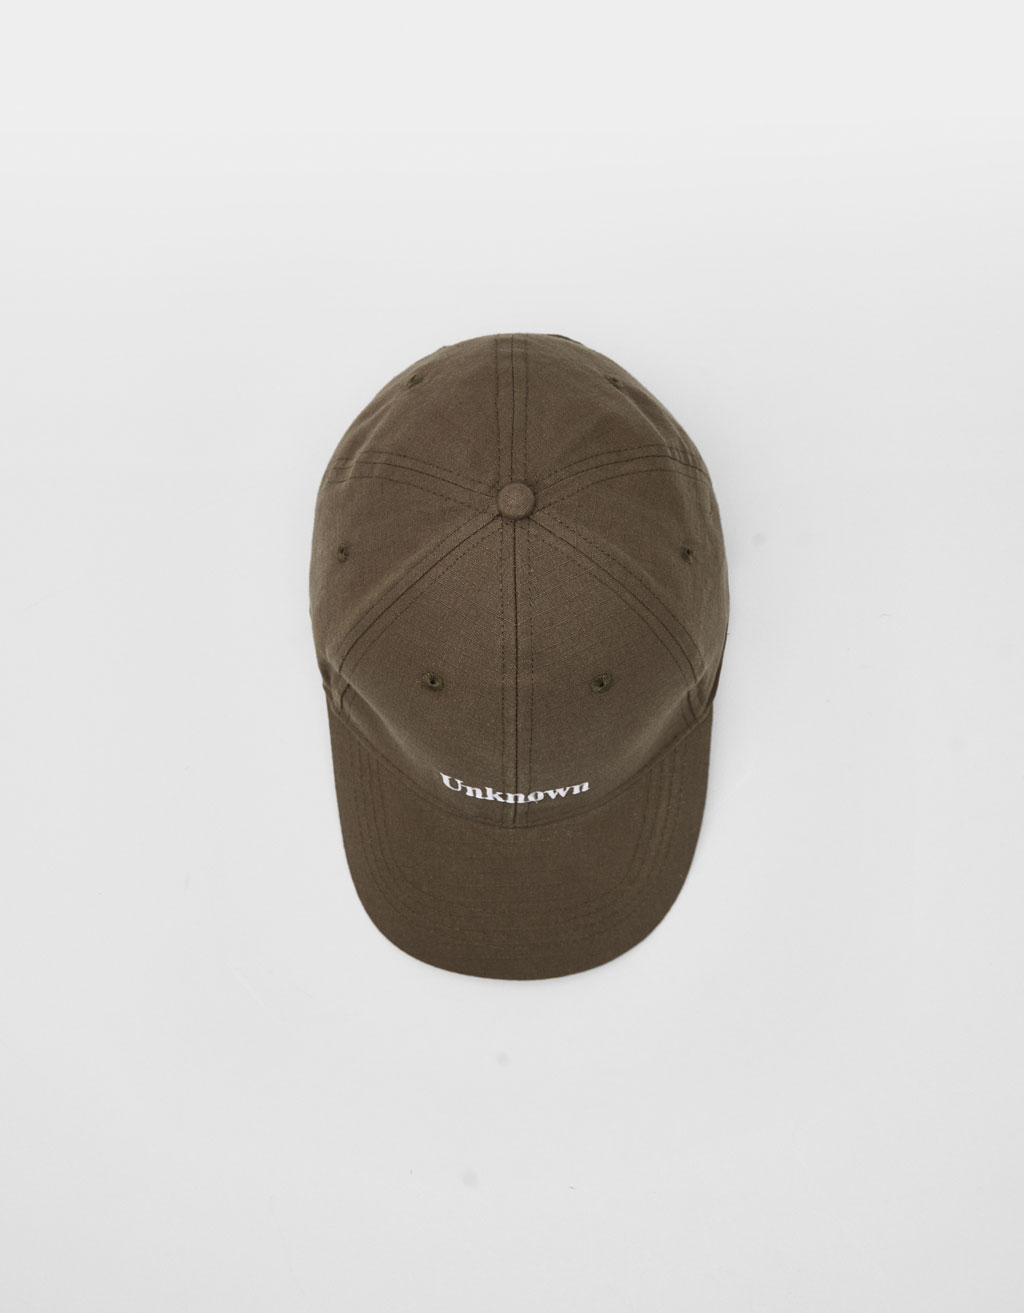 Cap with embroidered slogan